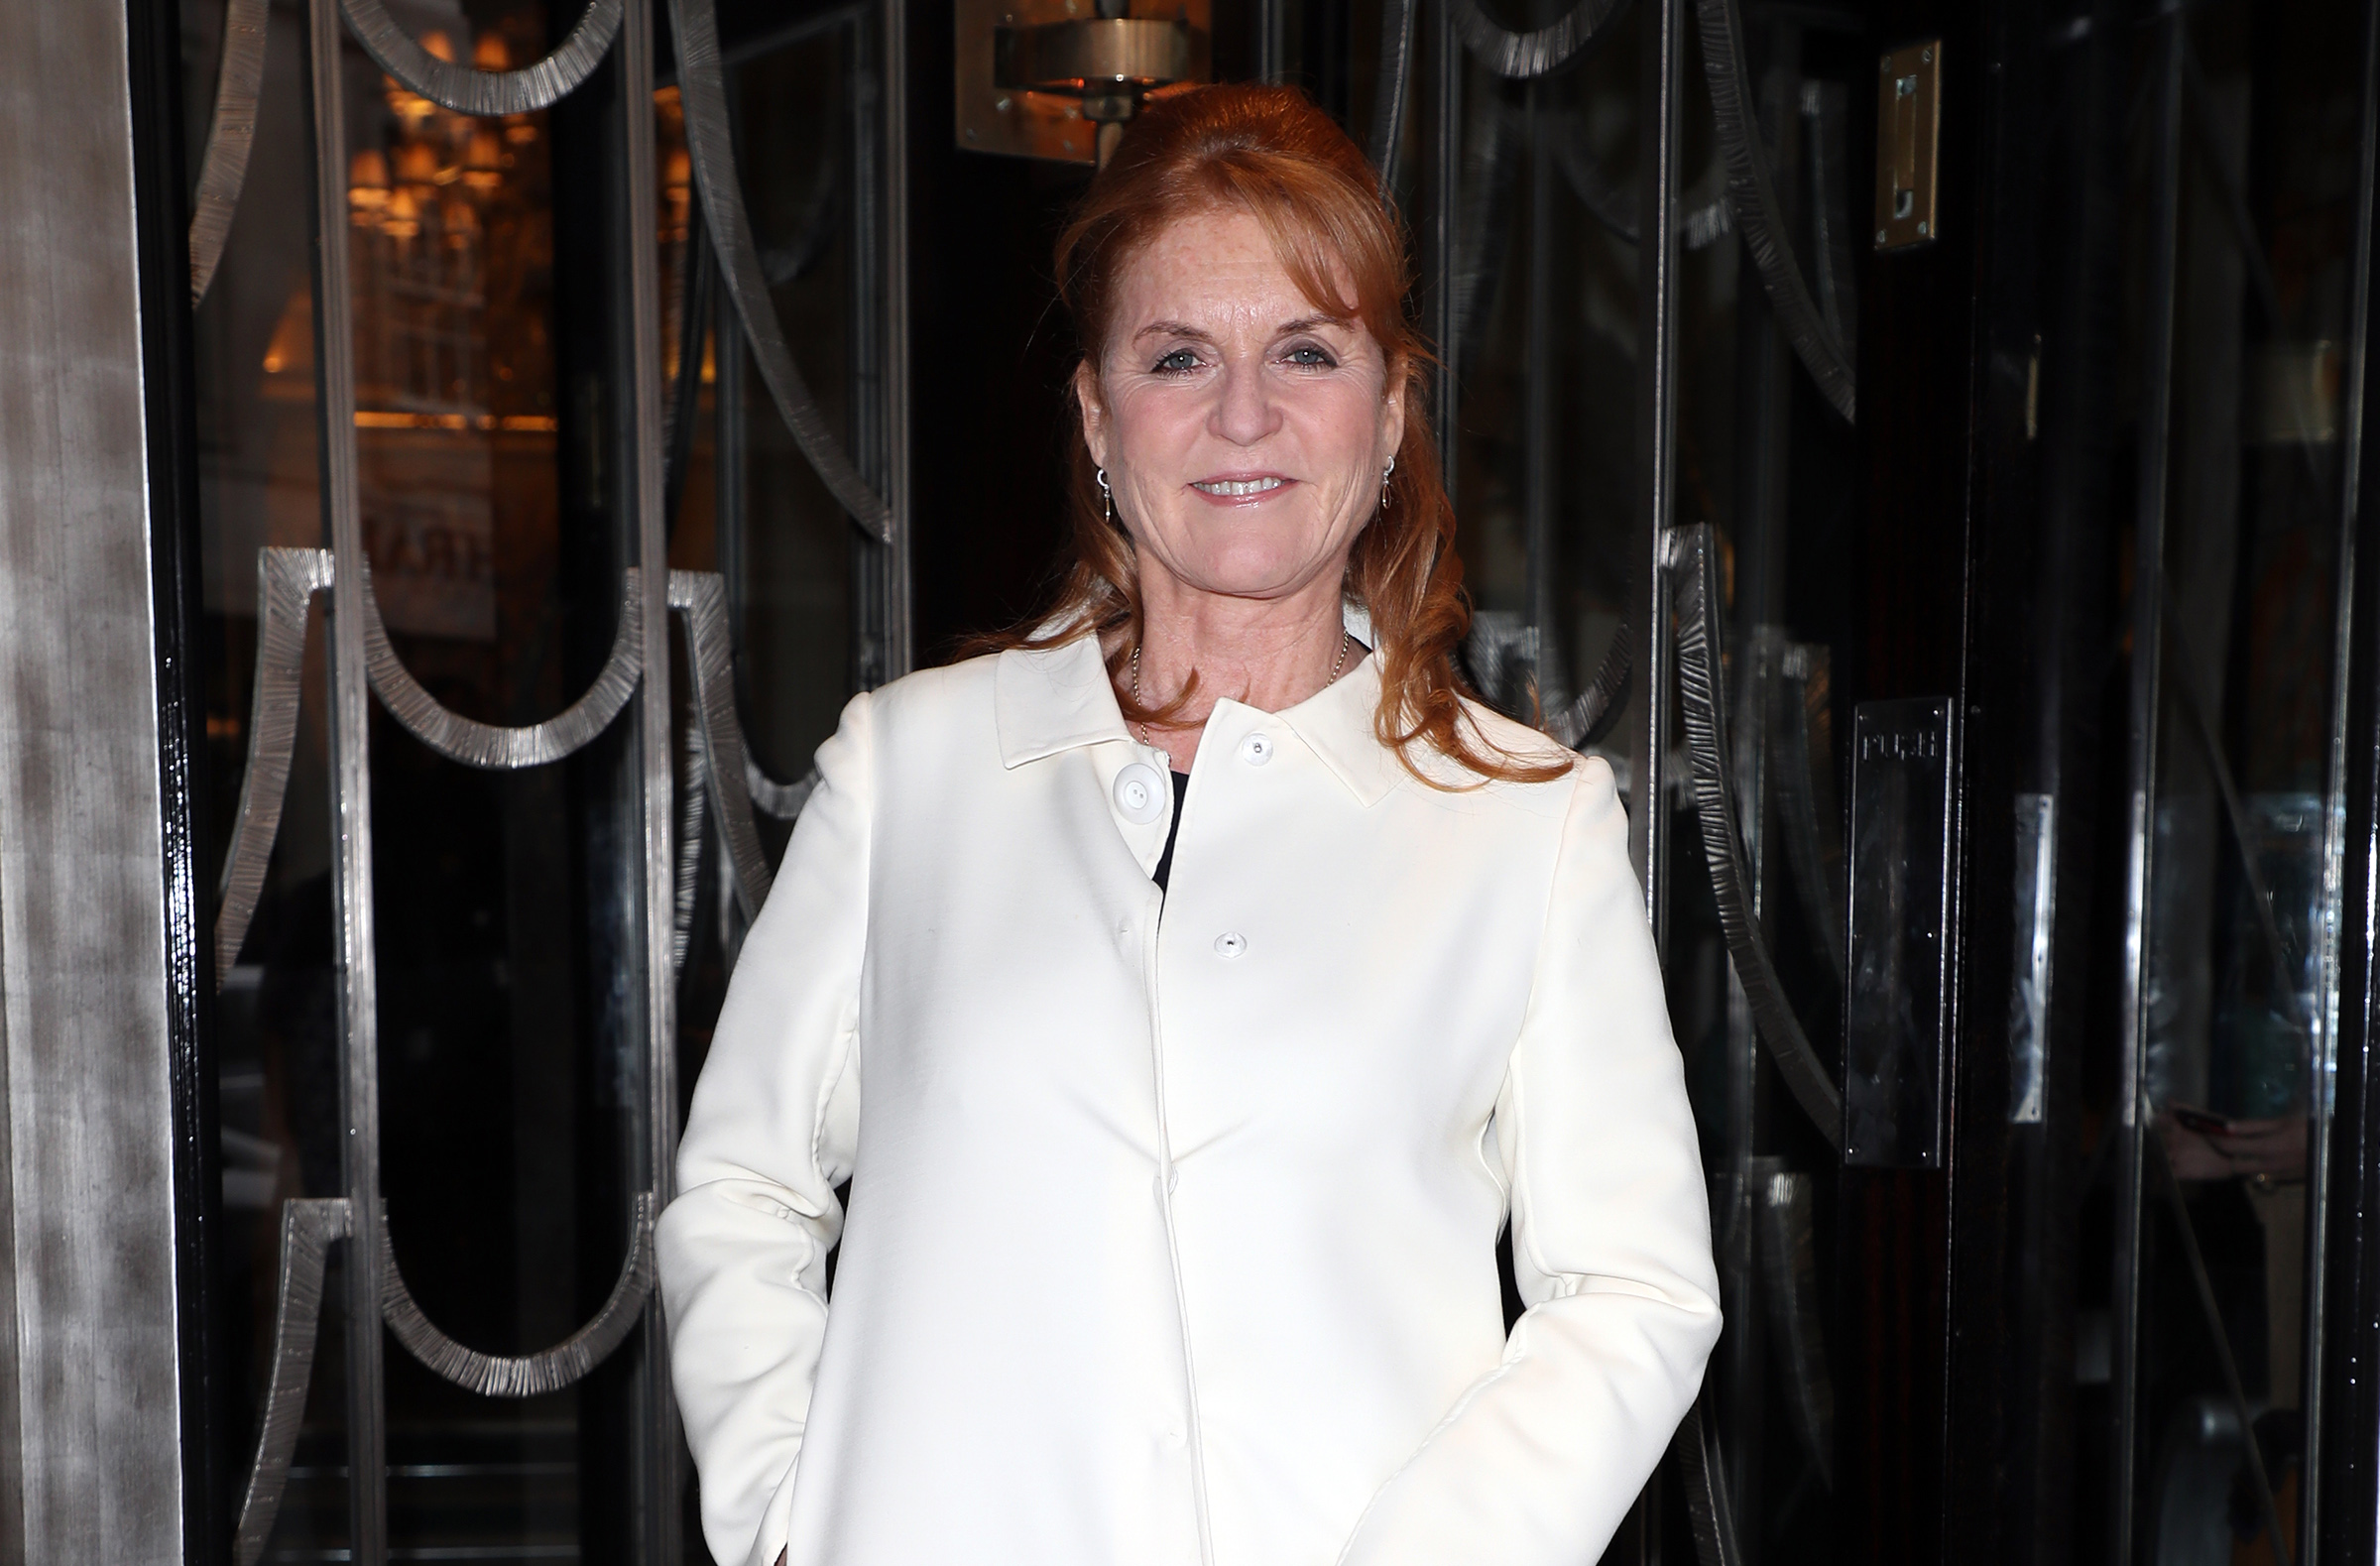 The Duchess of York breaks silence on how Princesses Beatrice and Eugenie have been coping since Prince Andrew stepped down